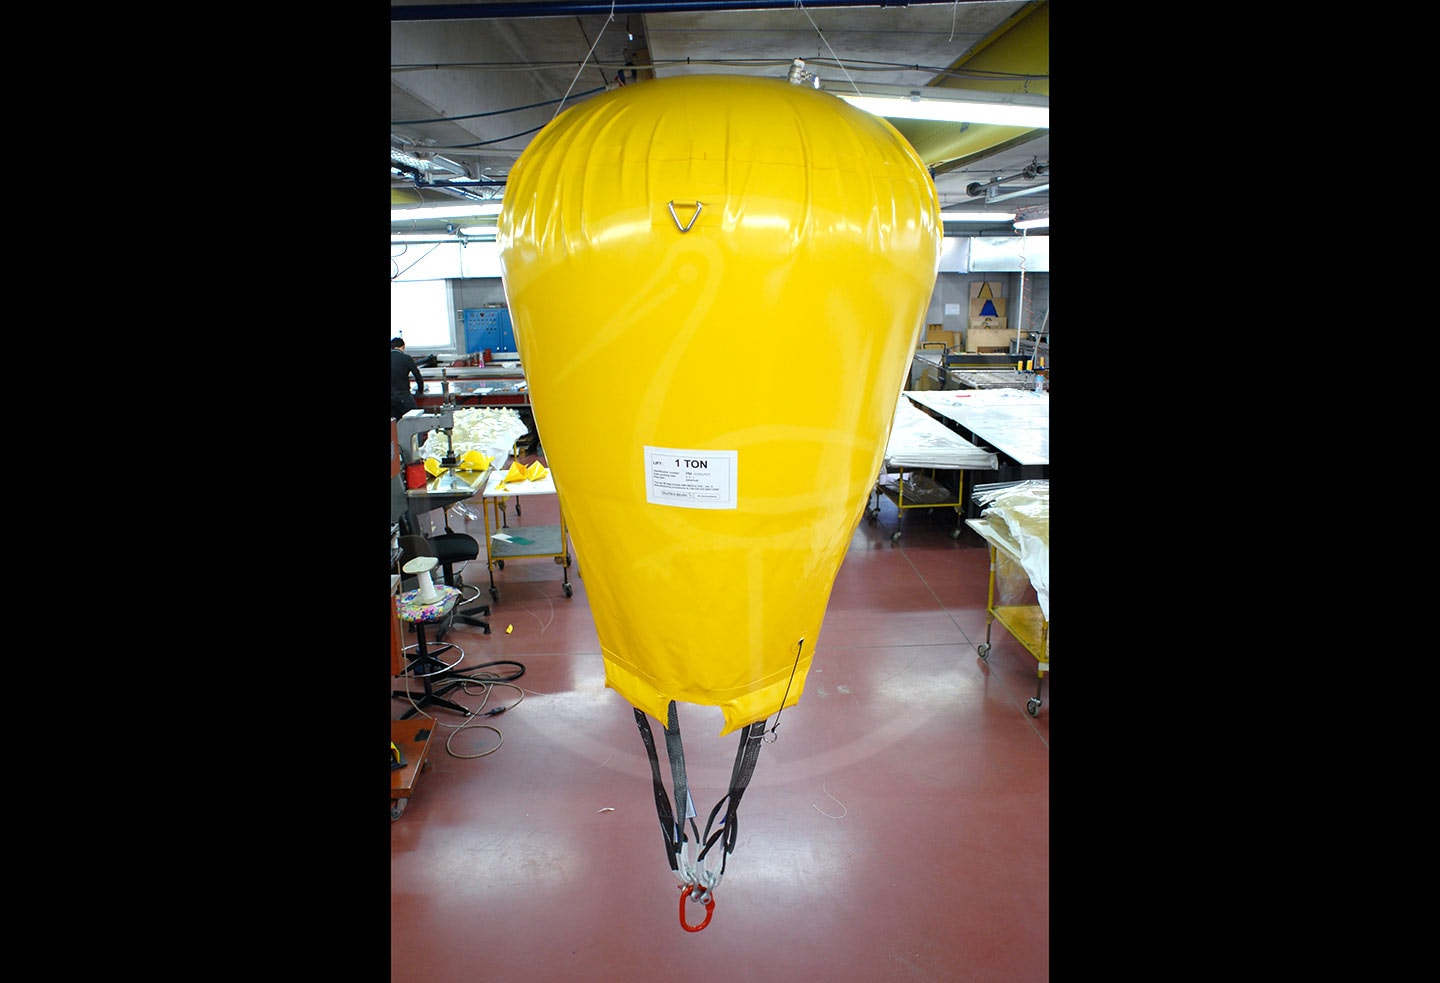 1 ton parachute lift balloon